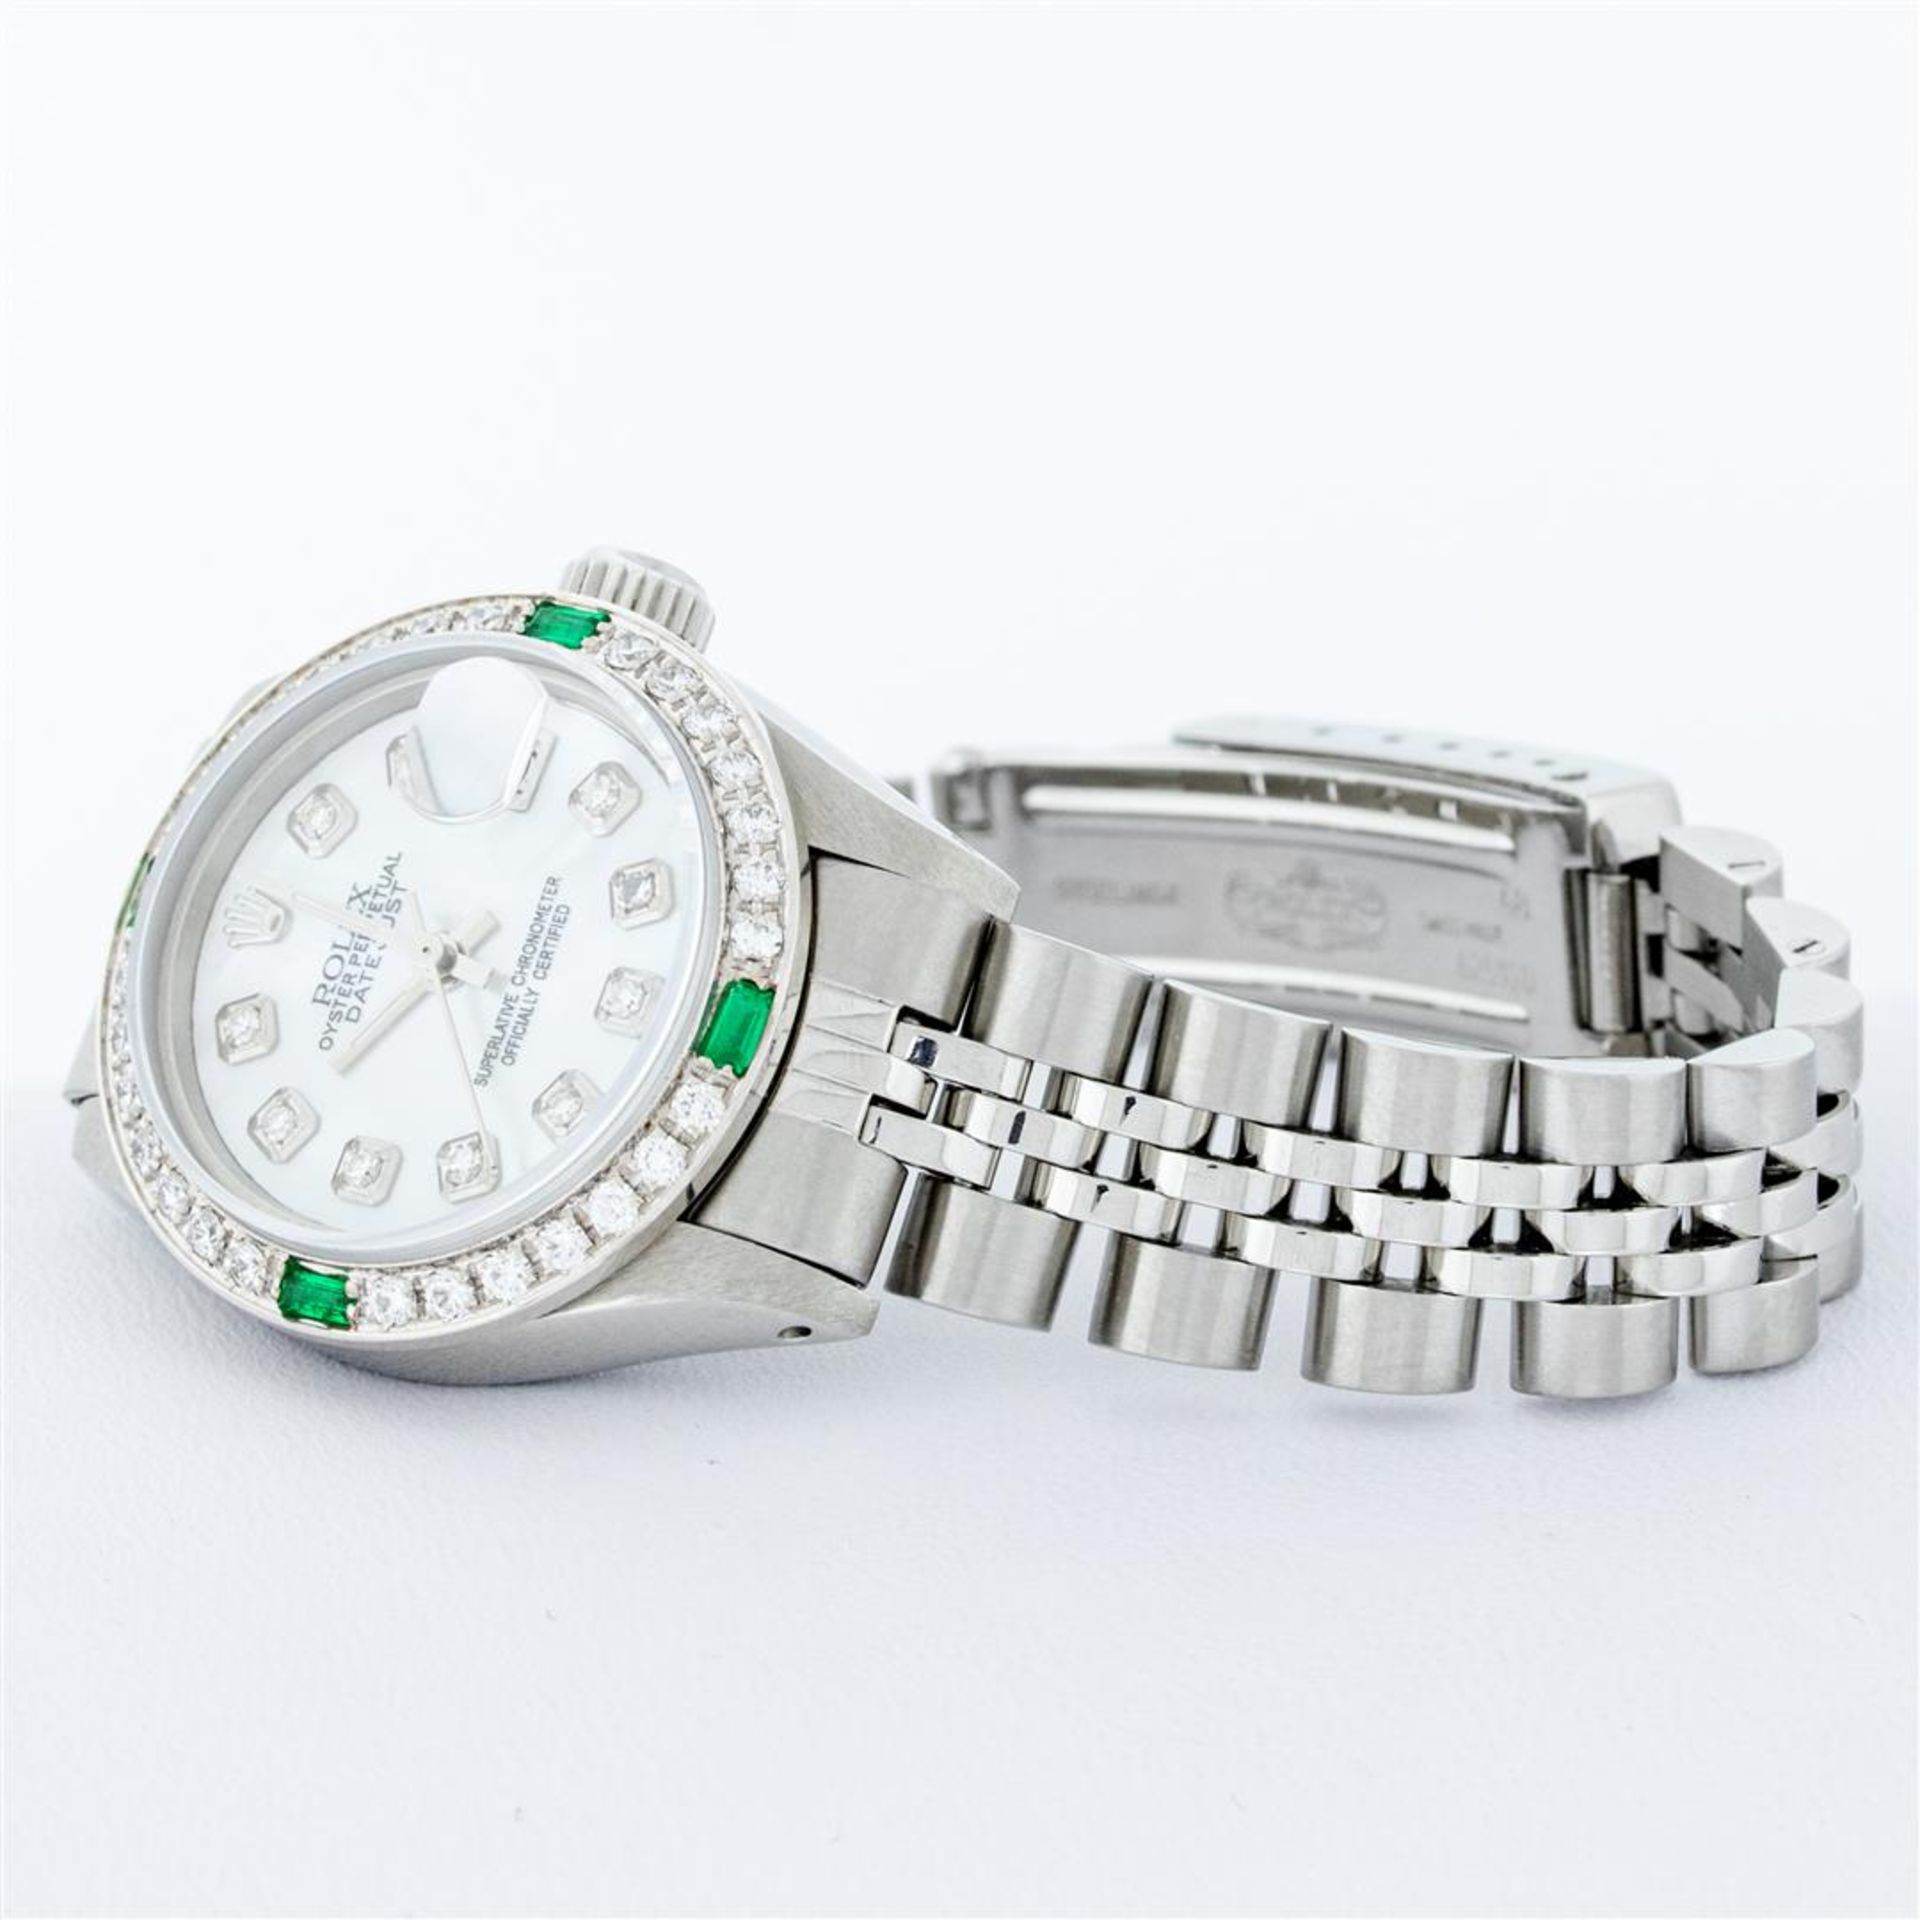 Rolex Ladies Stainless Steel Mother Of Pearl Diamond 26MM Datejust Wristwatch - Image 3 of 9